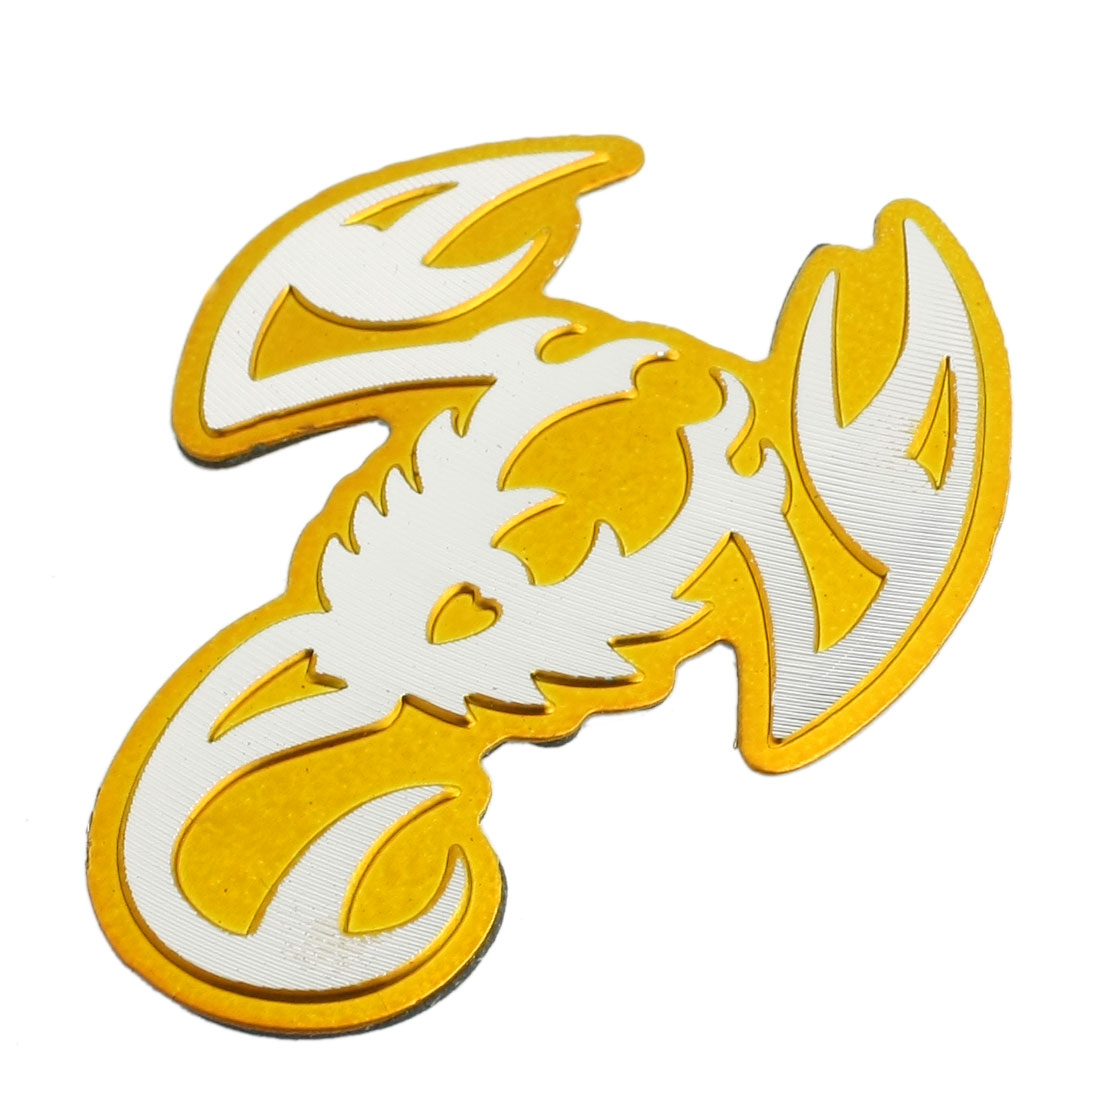 Gold Tone Scorpion Shape Adhesive Sticker Decal for Automobile